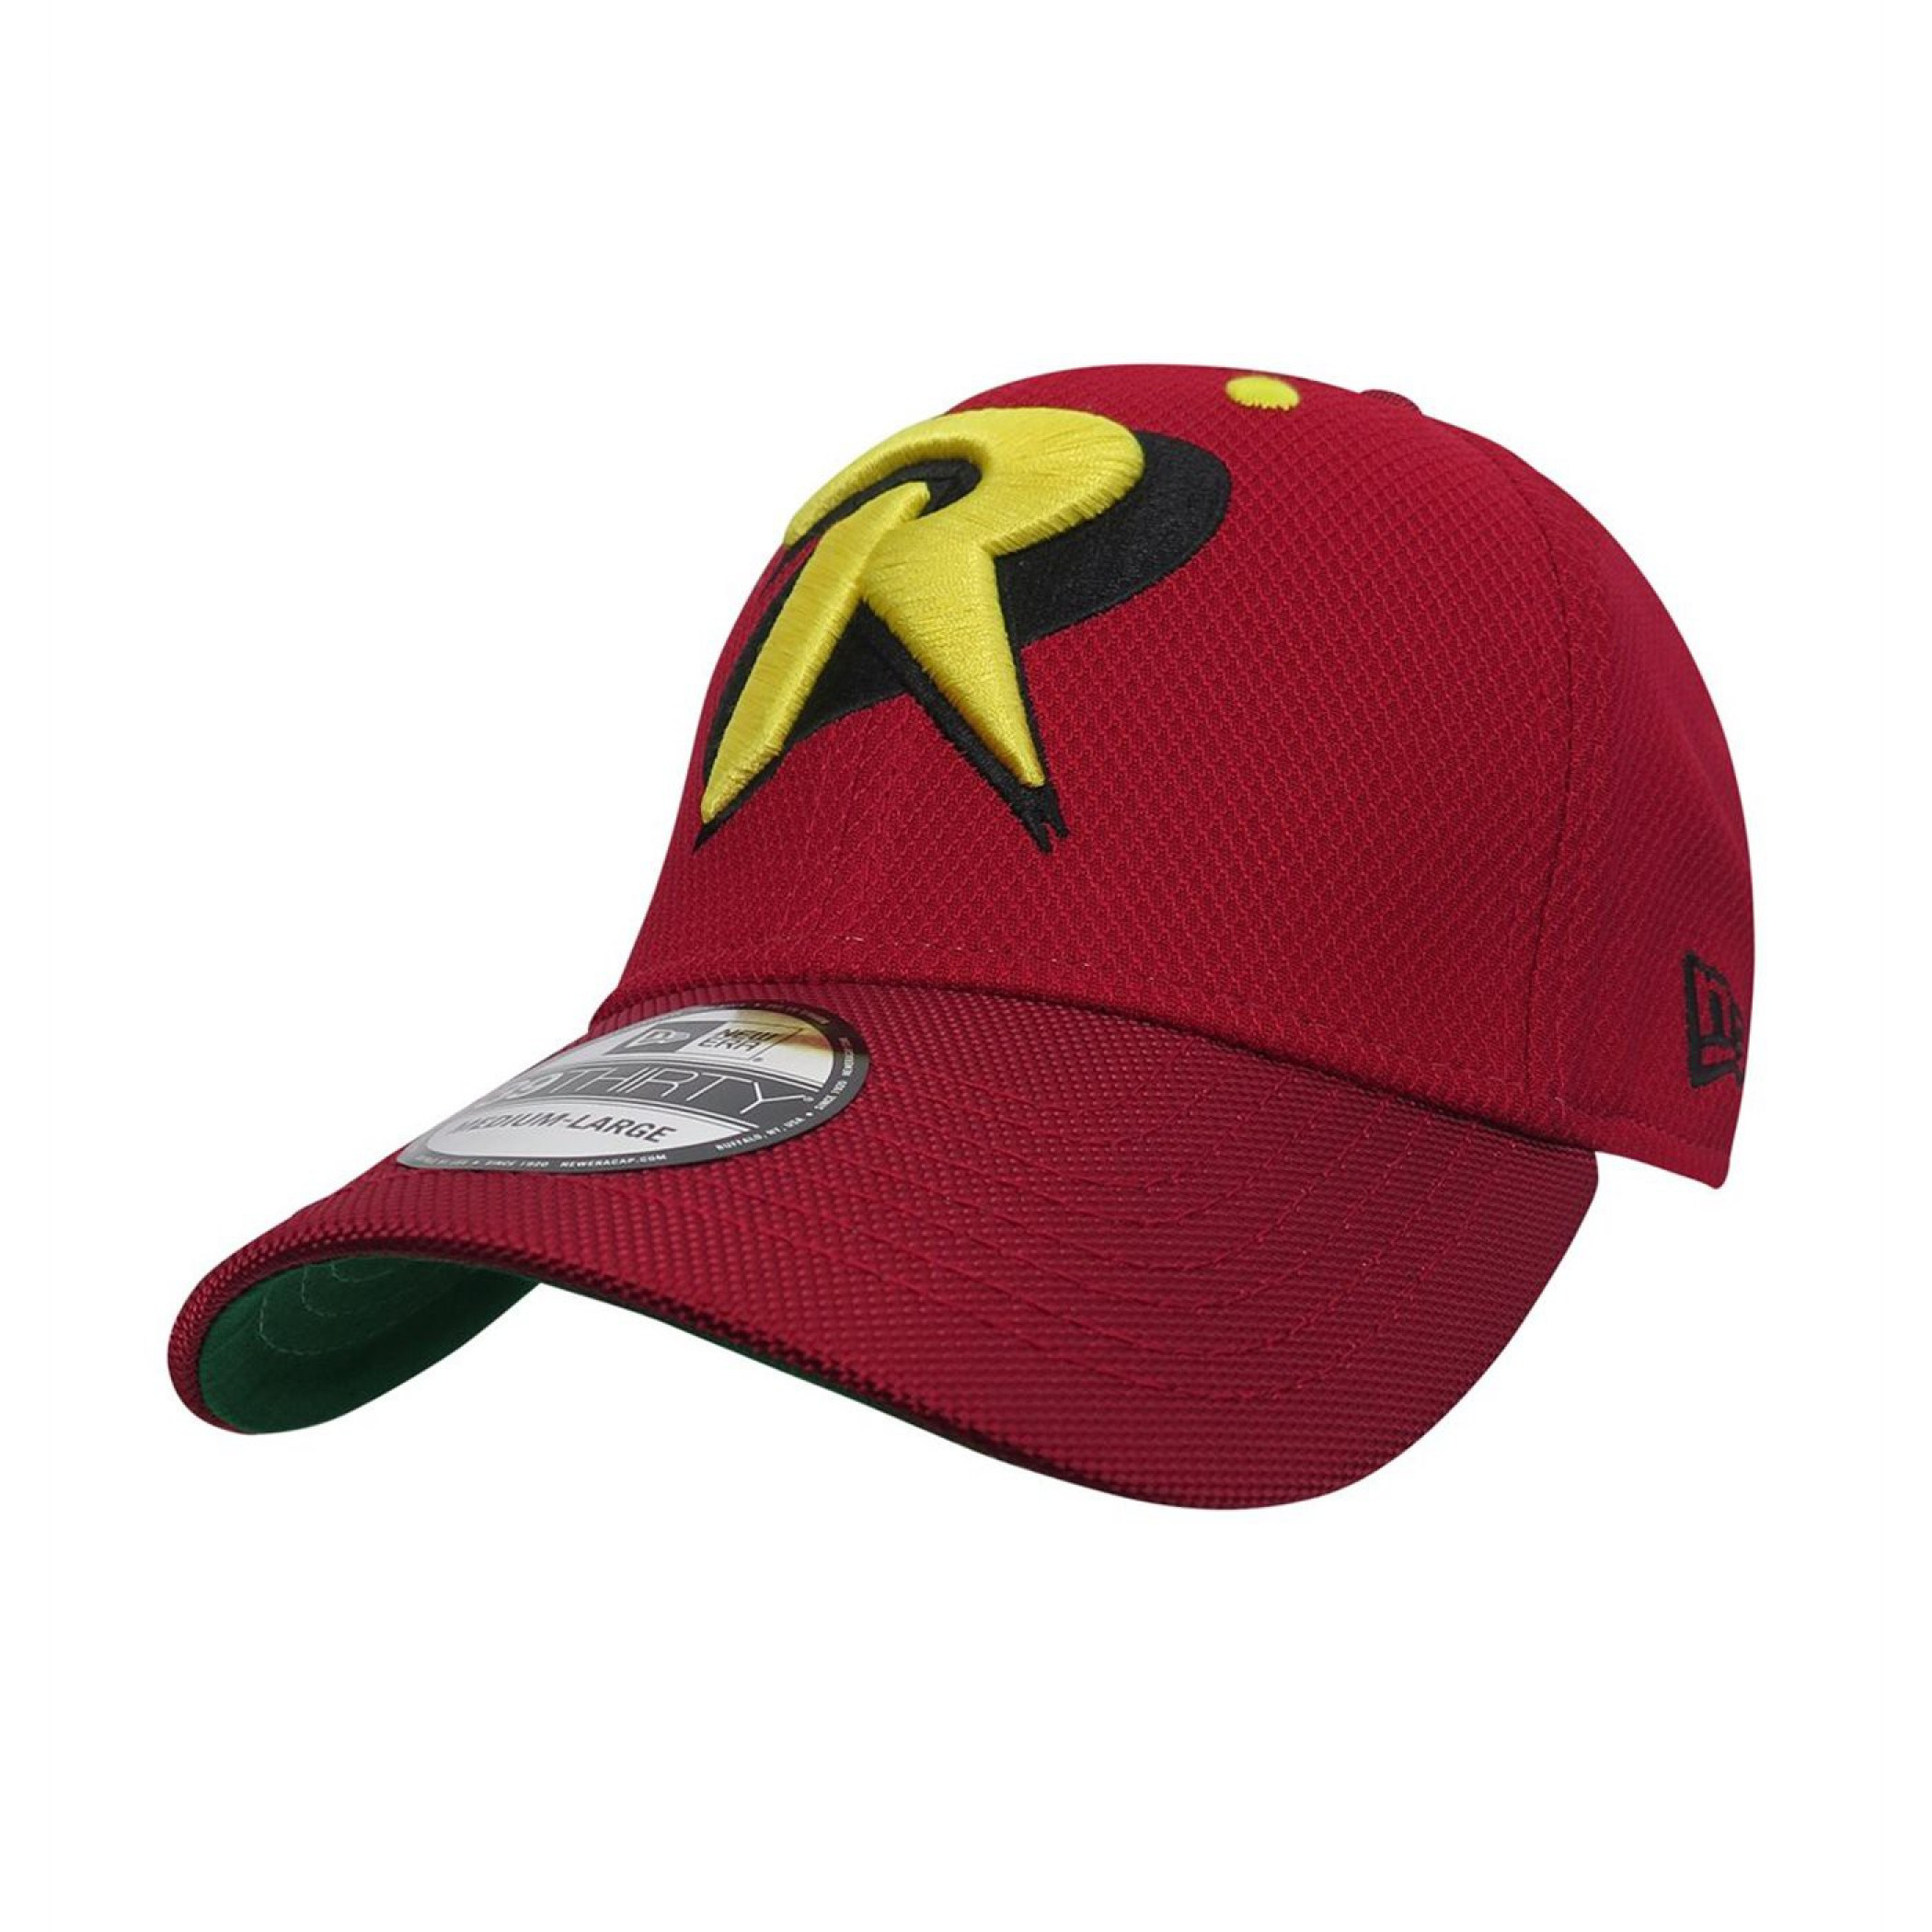 Robin Symbol Armor 39Thirty Fitted Hat Lined Version